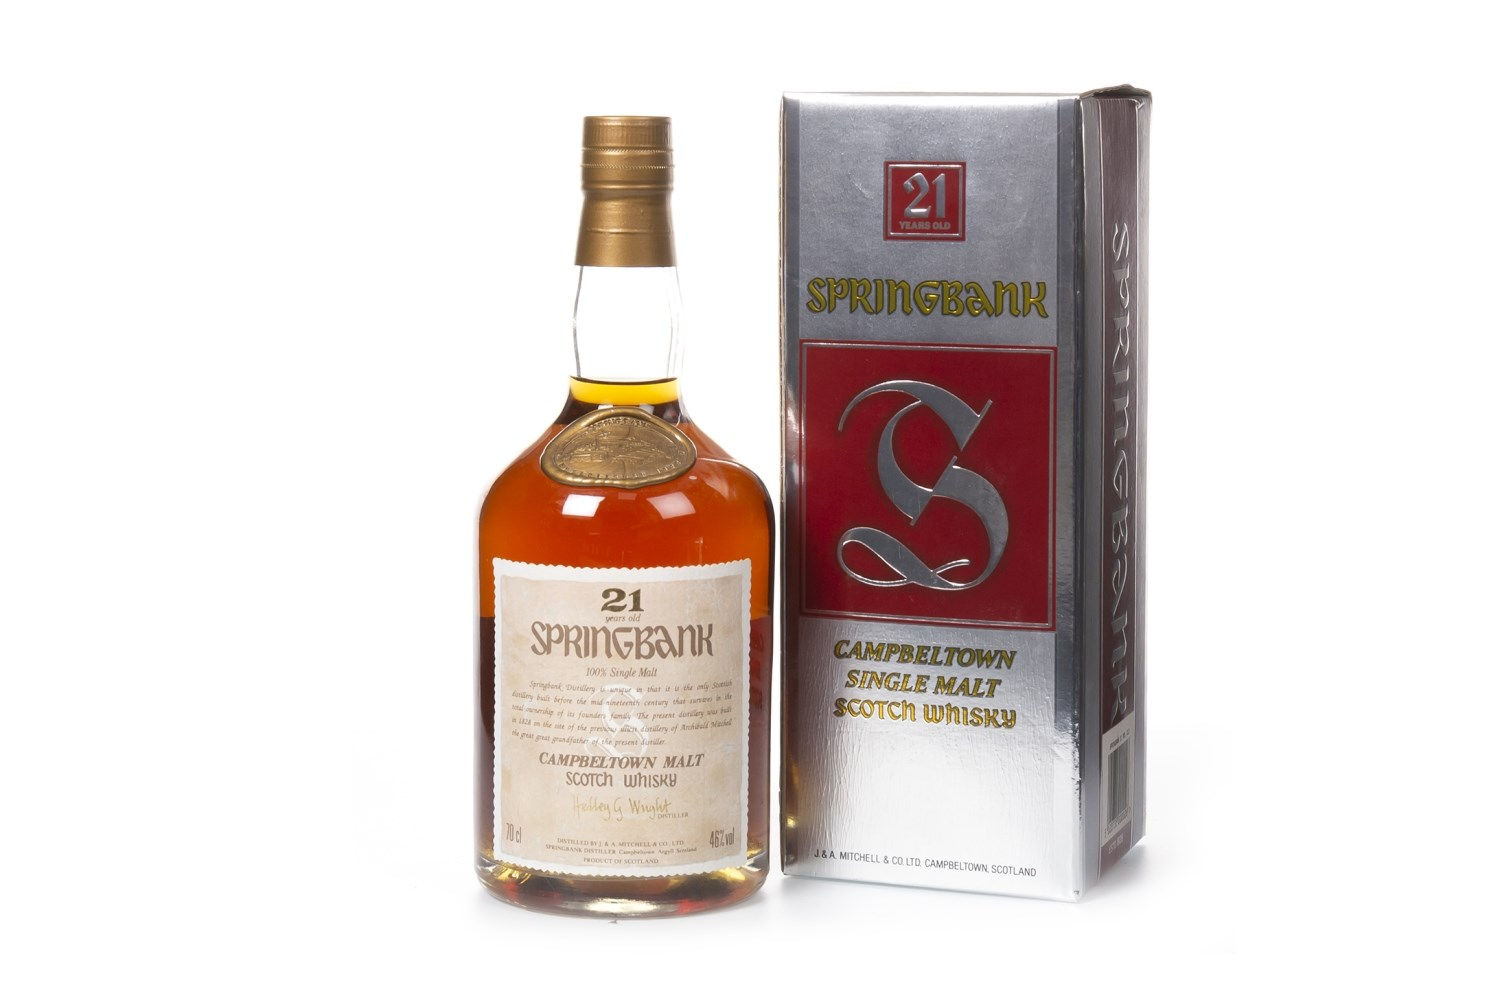 Lot 1029 - SPRINGBANK 21 YEARS OLD